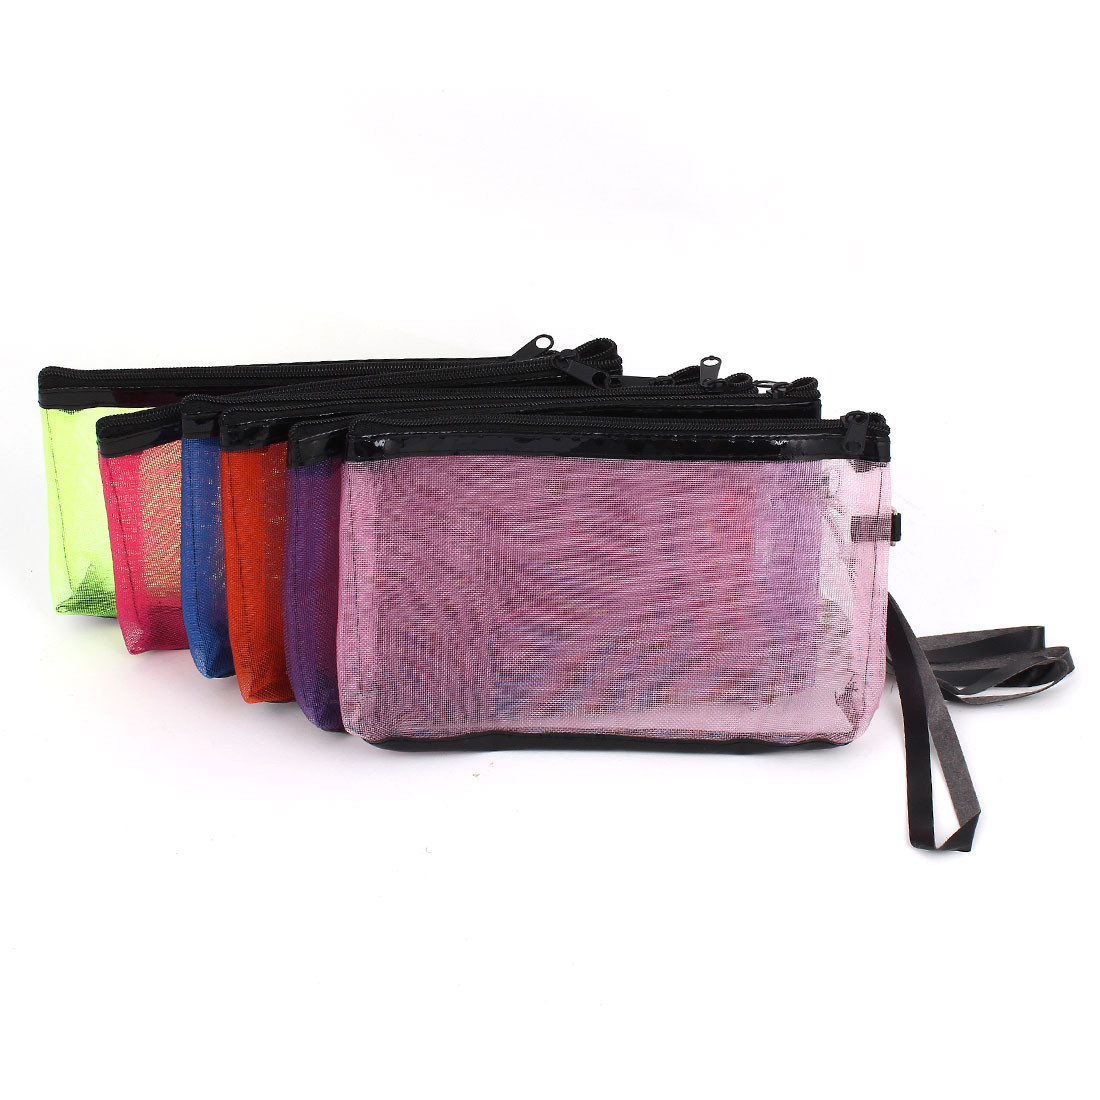 6 Pcs Assorted Color Nylon Meshy Zippered Makeup Cosmetic Bag Case w Strap